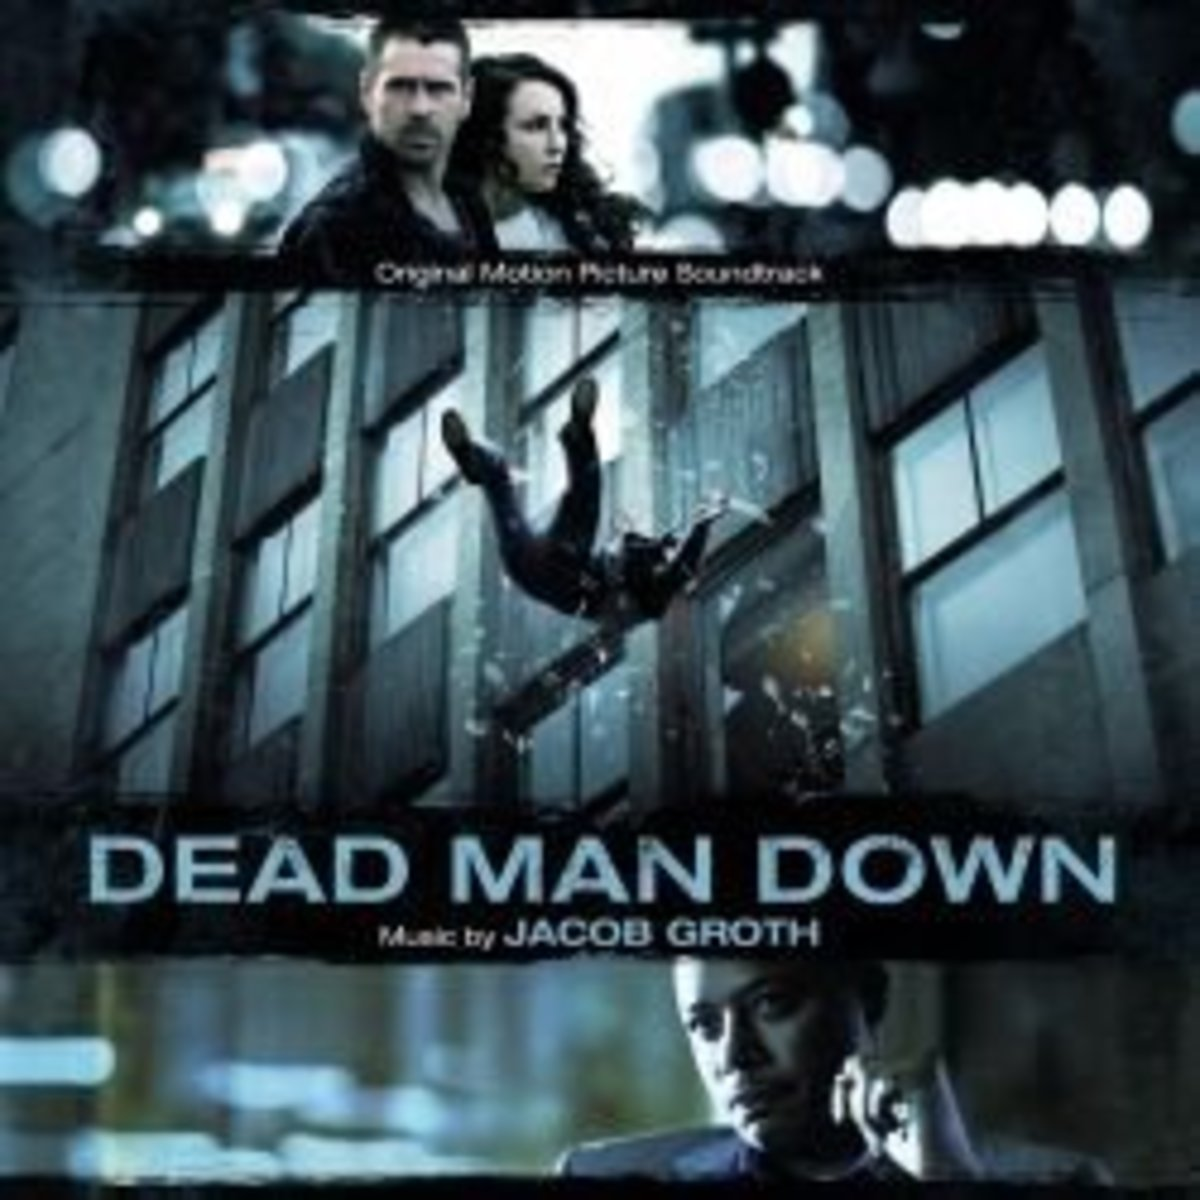 Dead Man Down Soundtrack: List of Songs